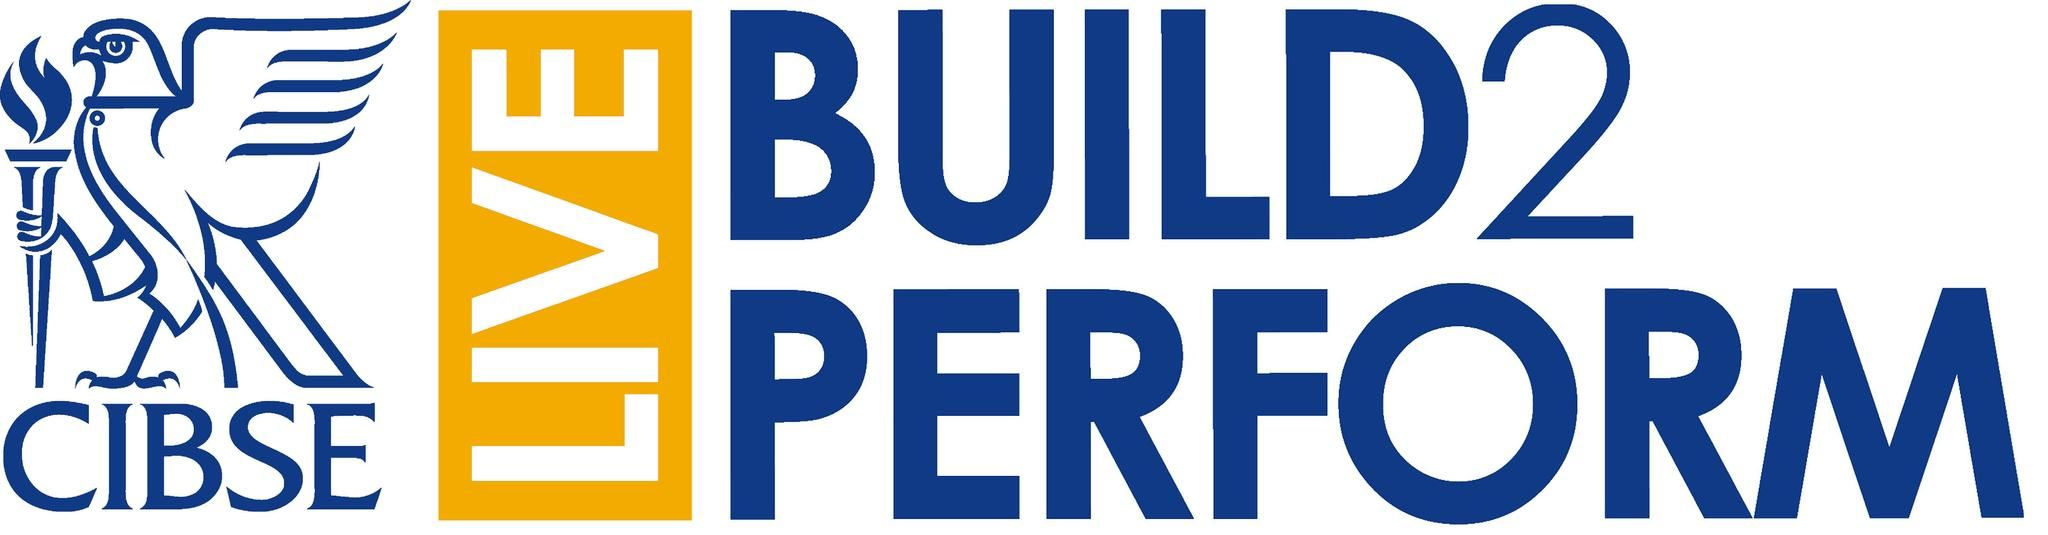 CIBSE Build2Perform Live 2019